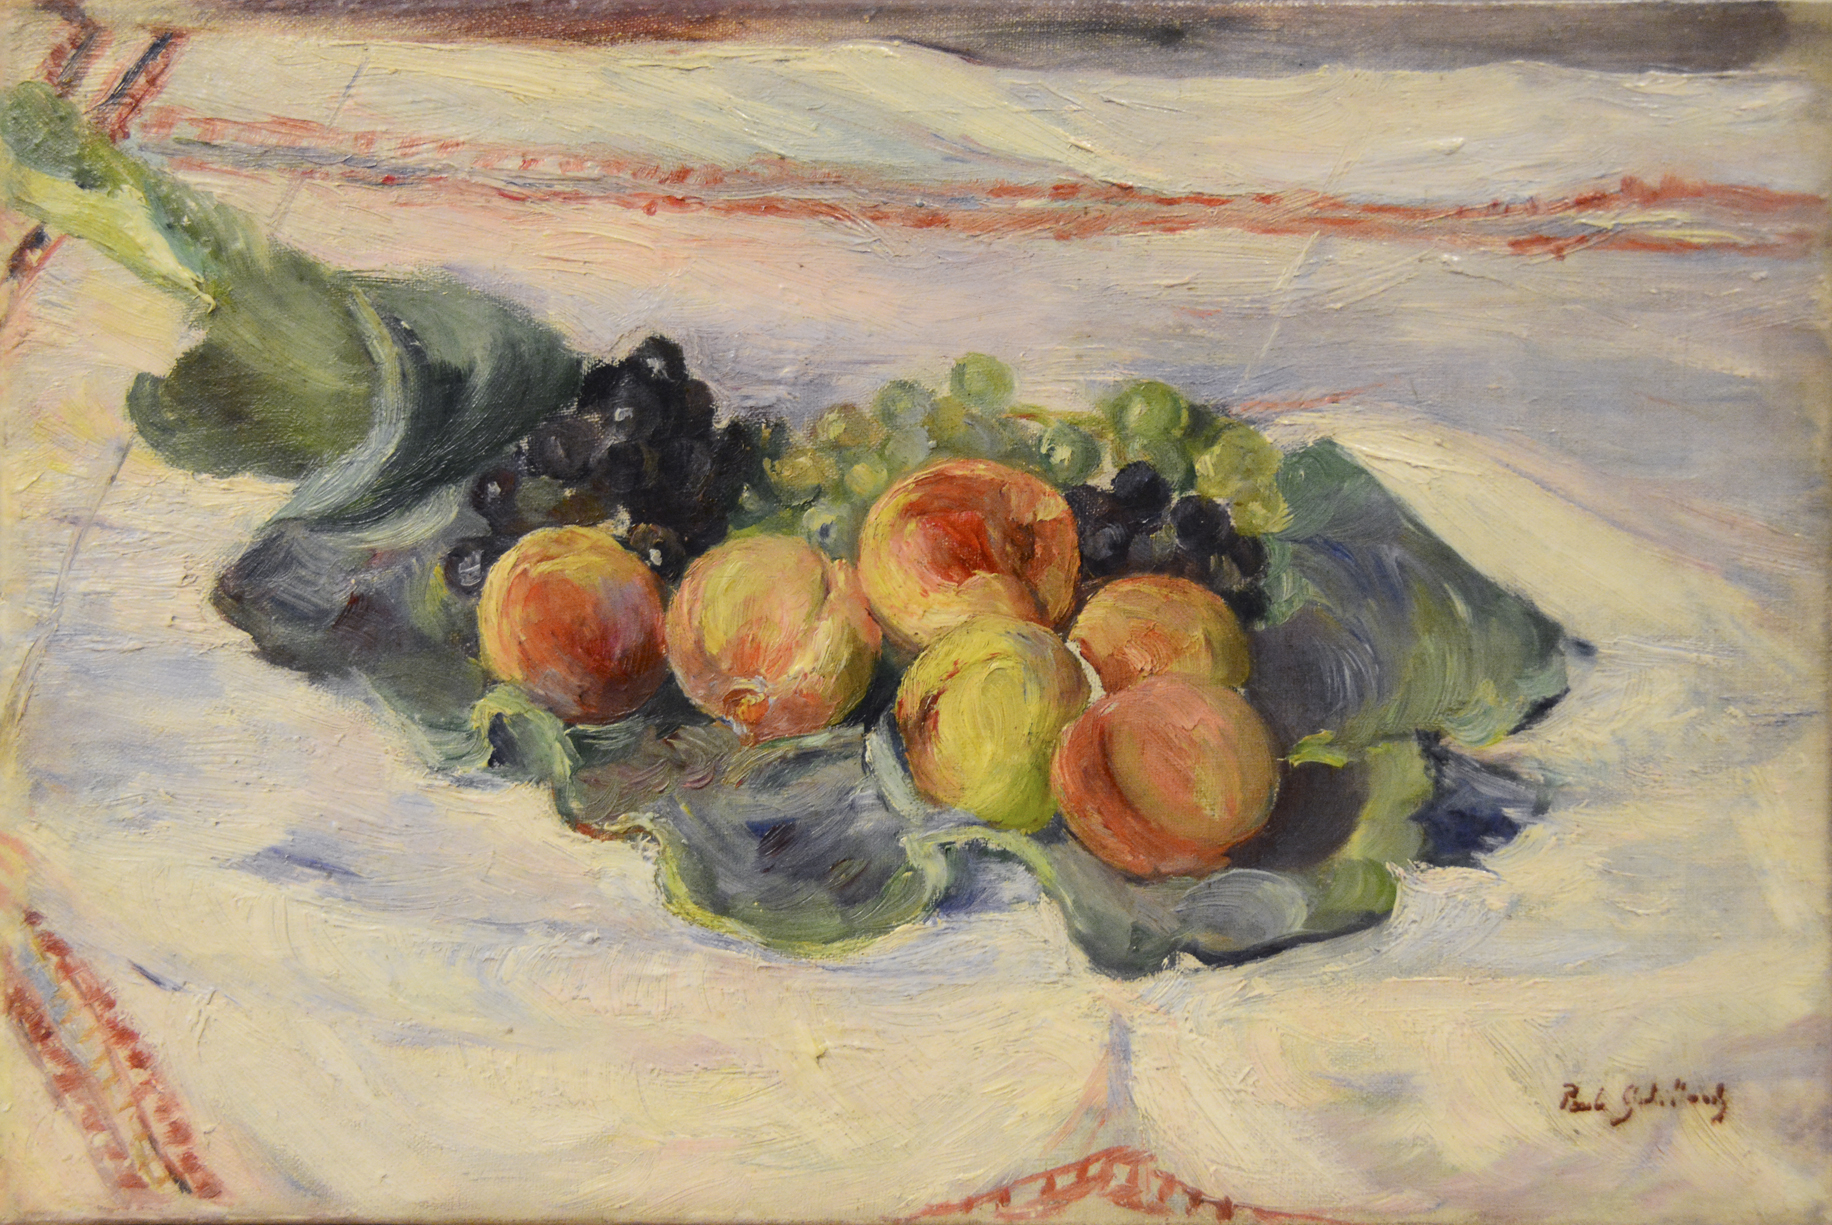 alt Nature morte aux pêches et au raisin (Still-life with Peaches and Grapes)